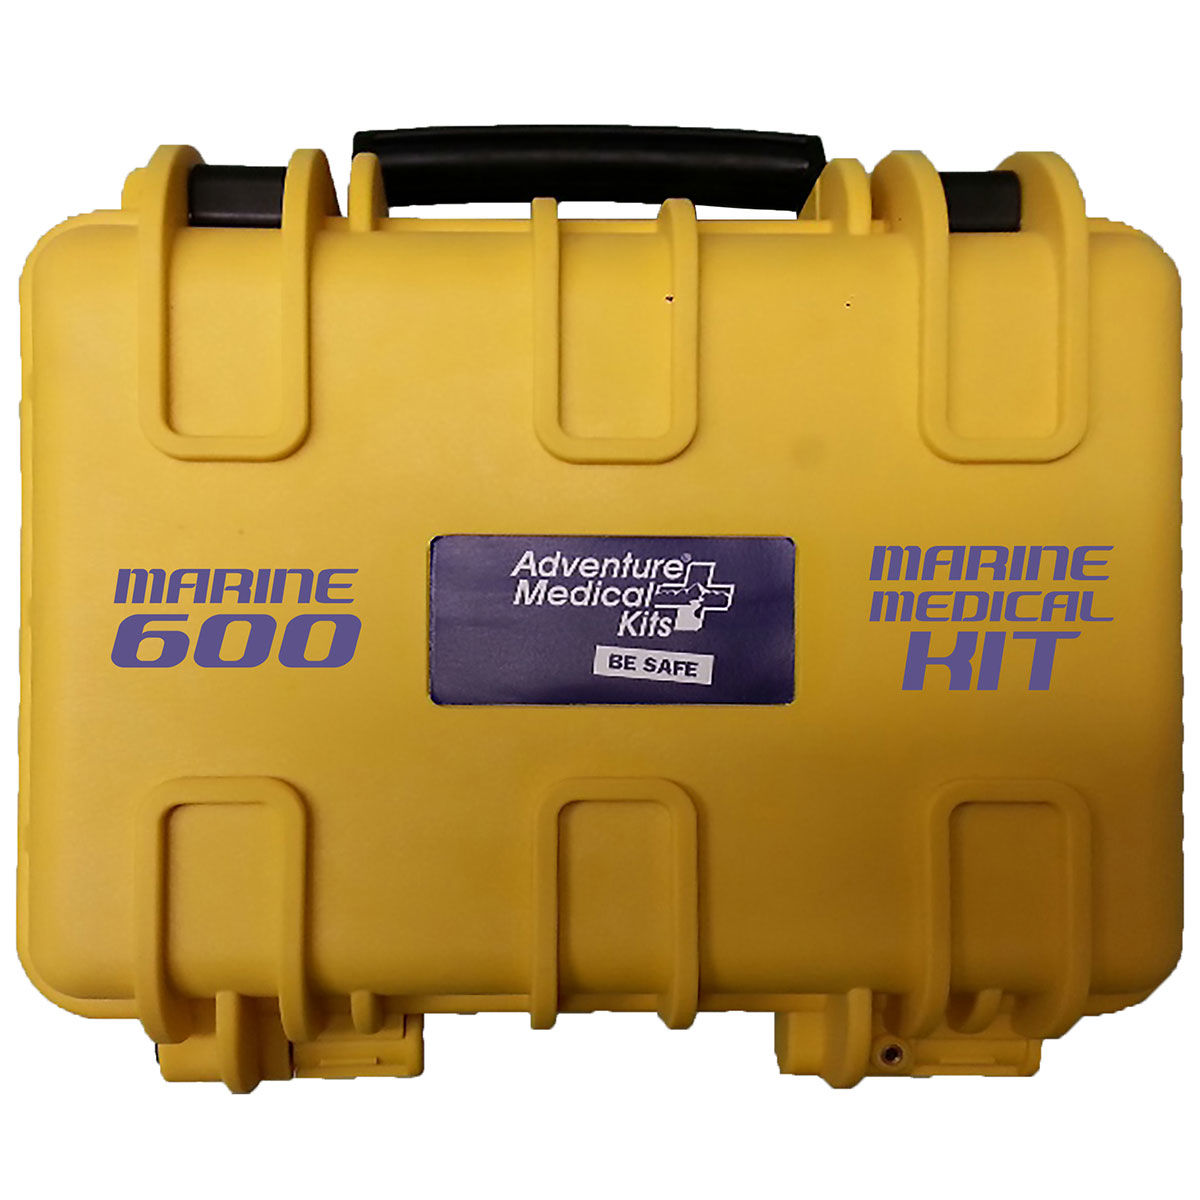 Adventure Medical Kits Marine 600 First-Aid Kit